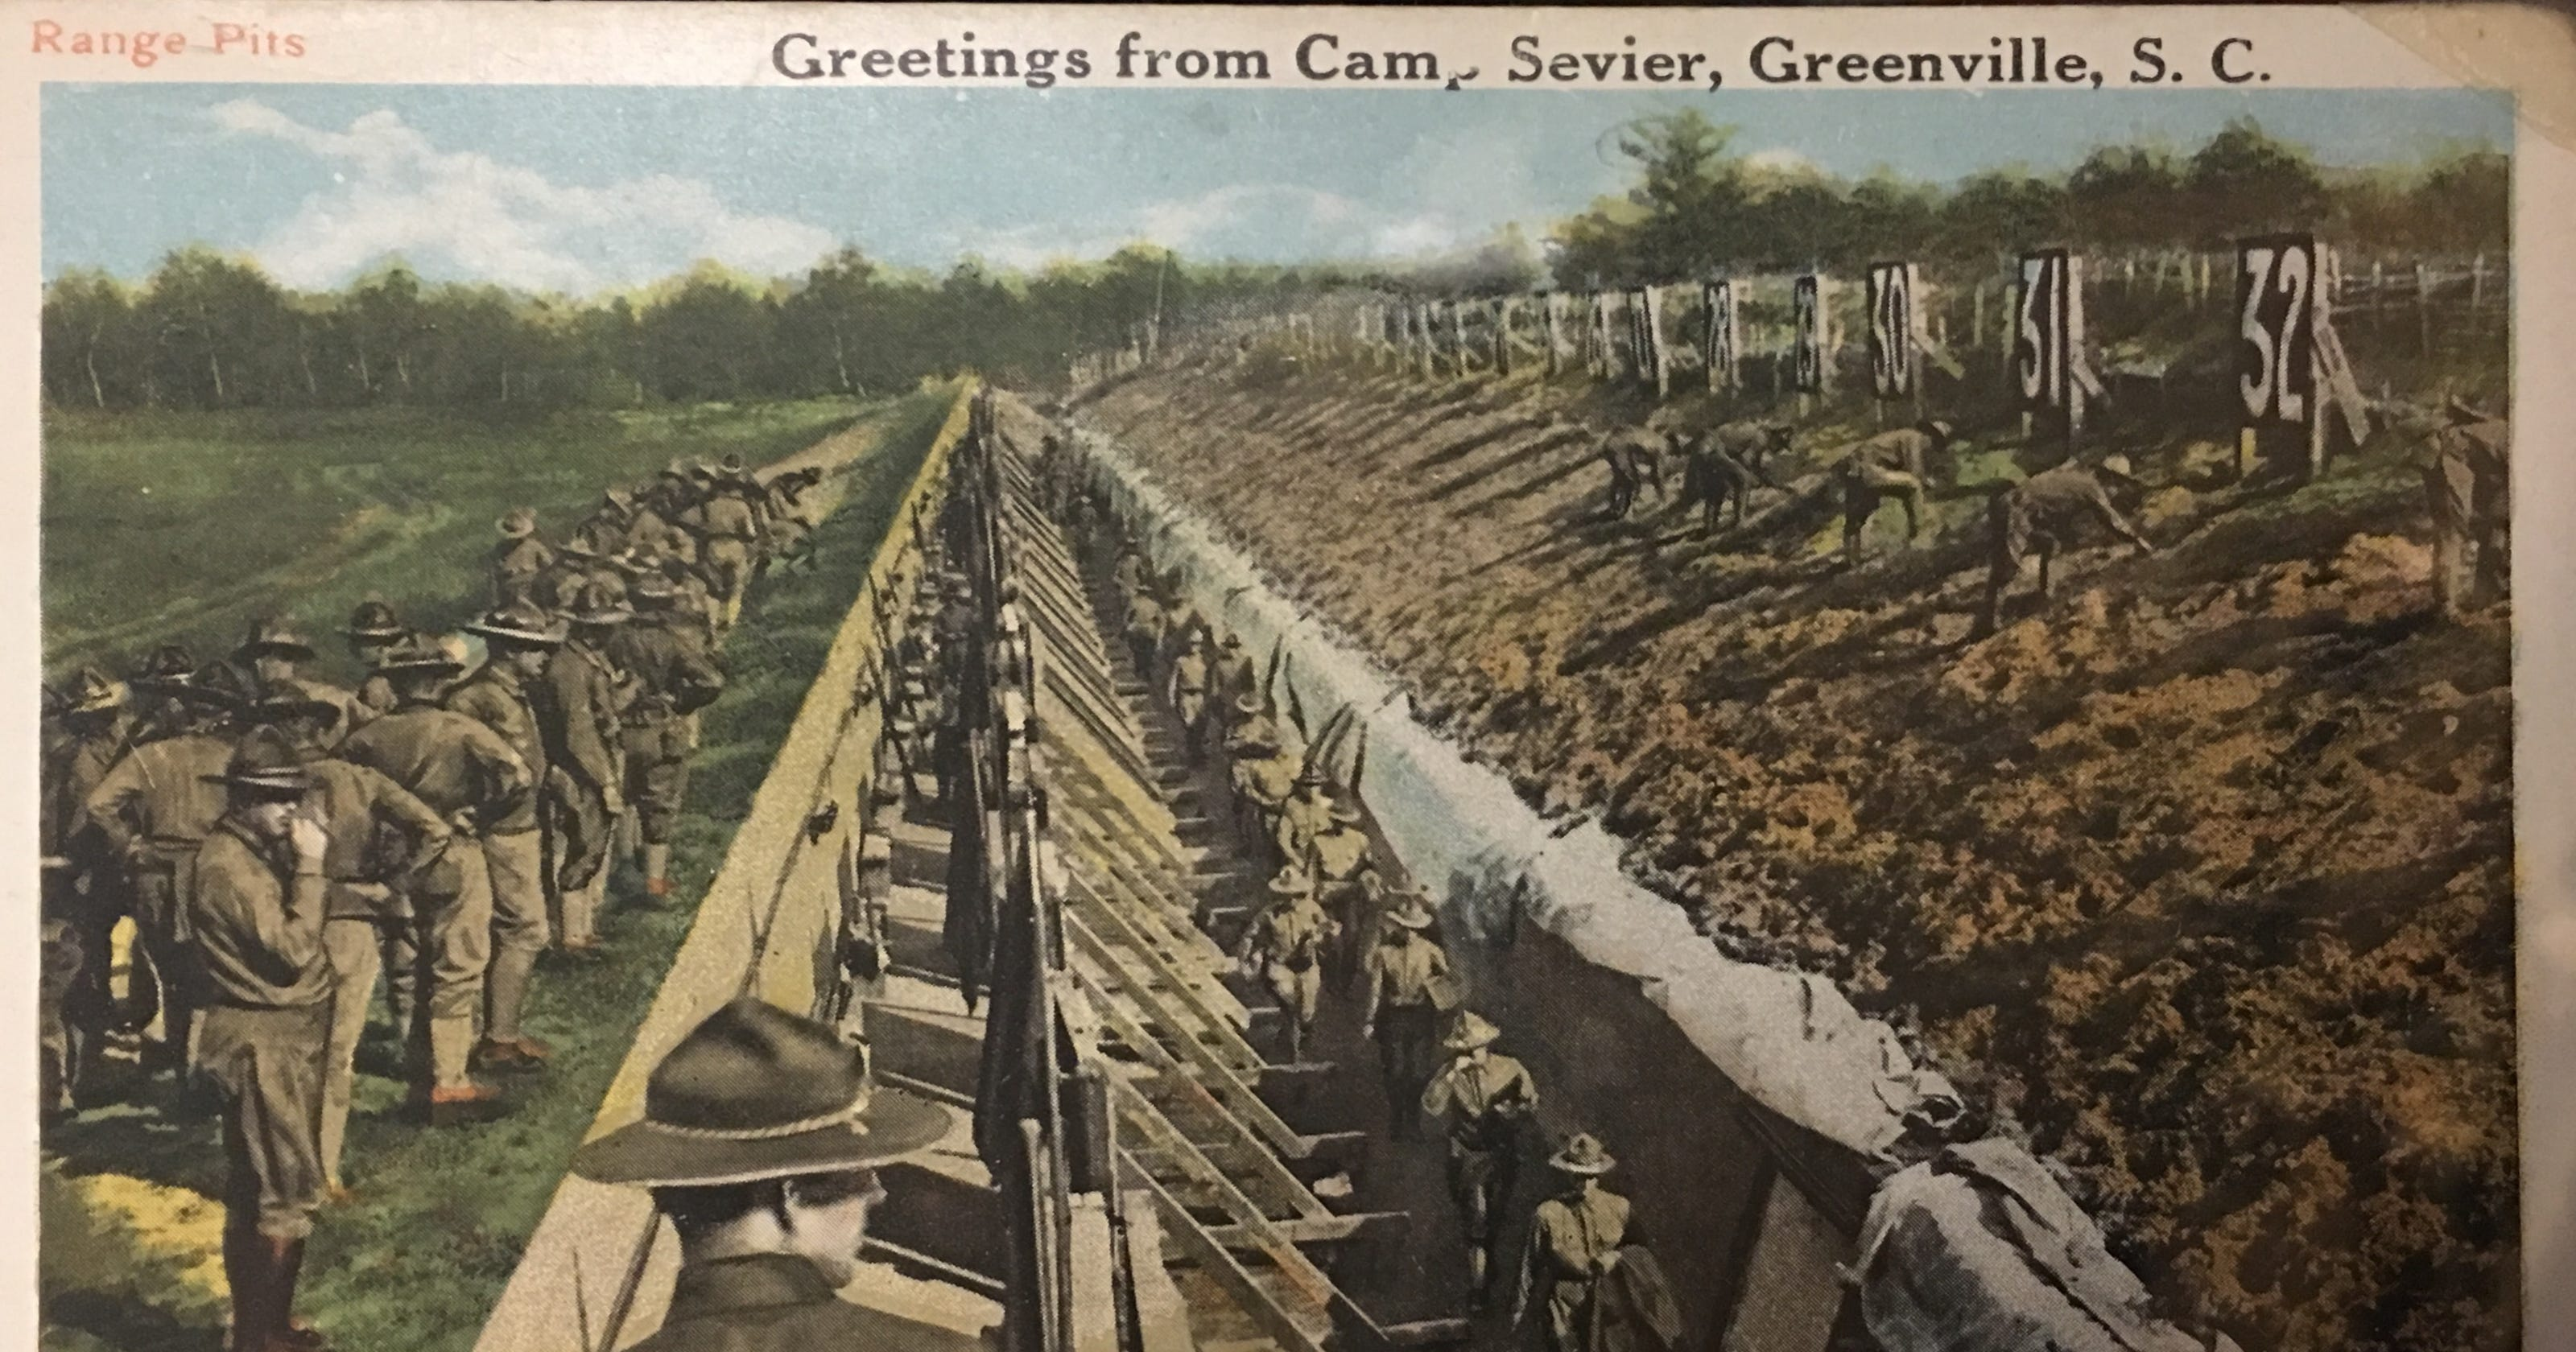 Greenville turned into \'war machine\' 100 years ago